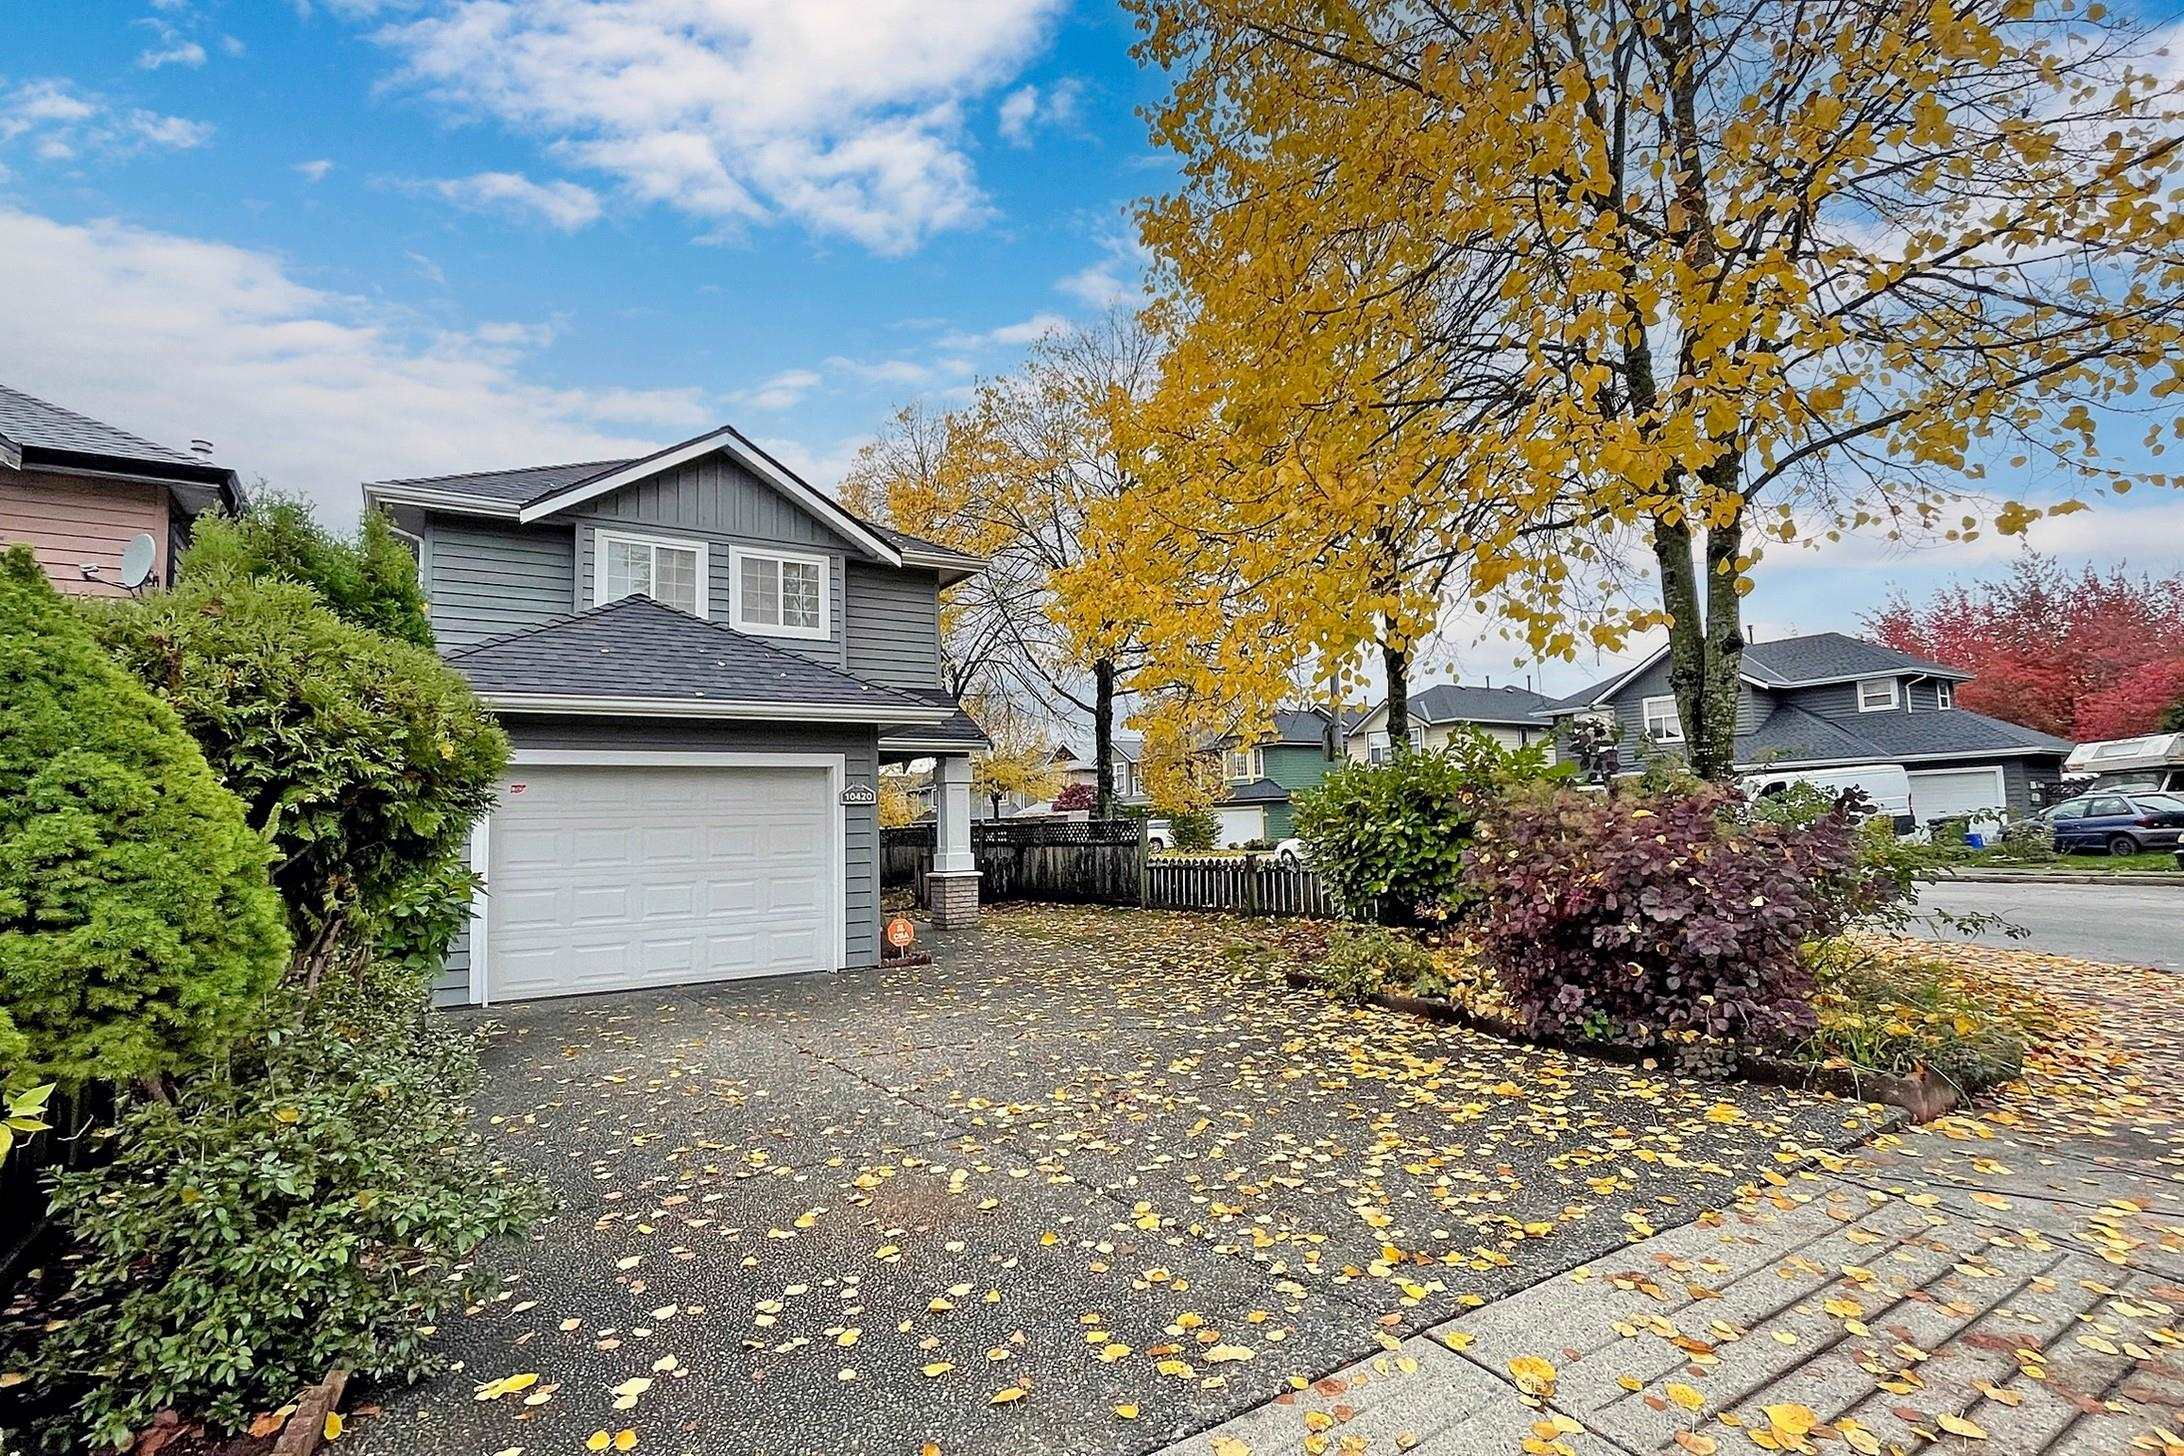 10420 KILBY DRIVE - West Cambie House/Single Family for sale, 4 Bedrooms (R2627262)